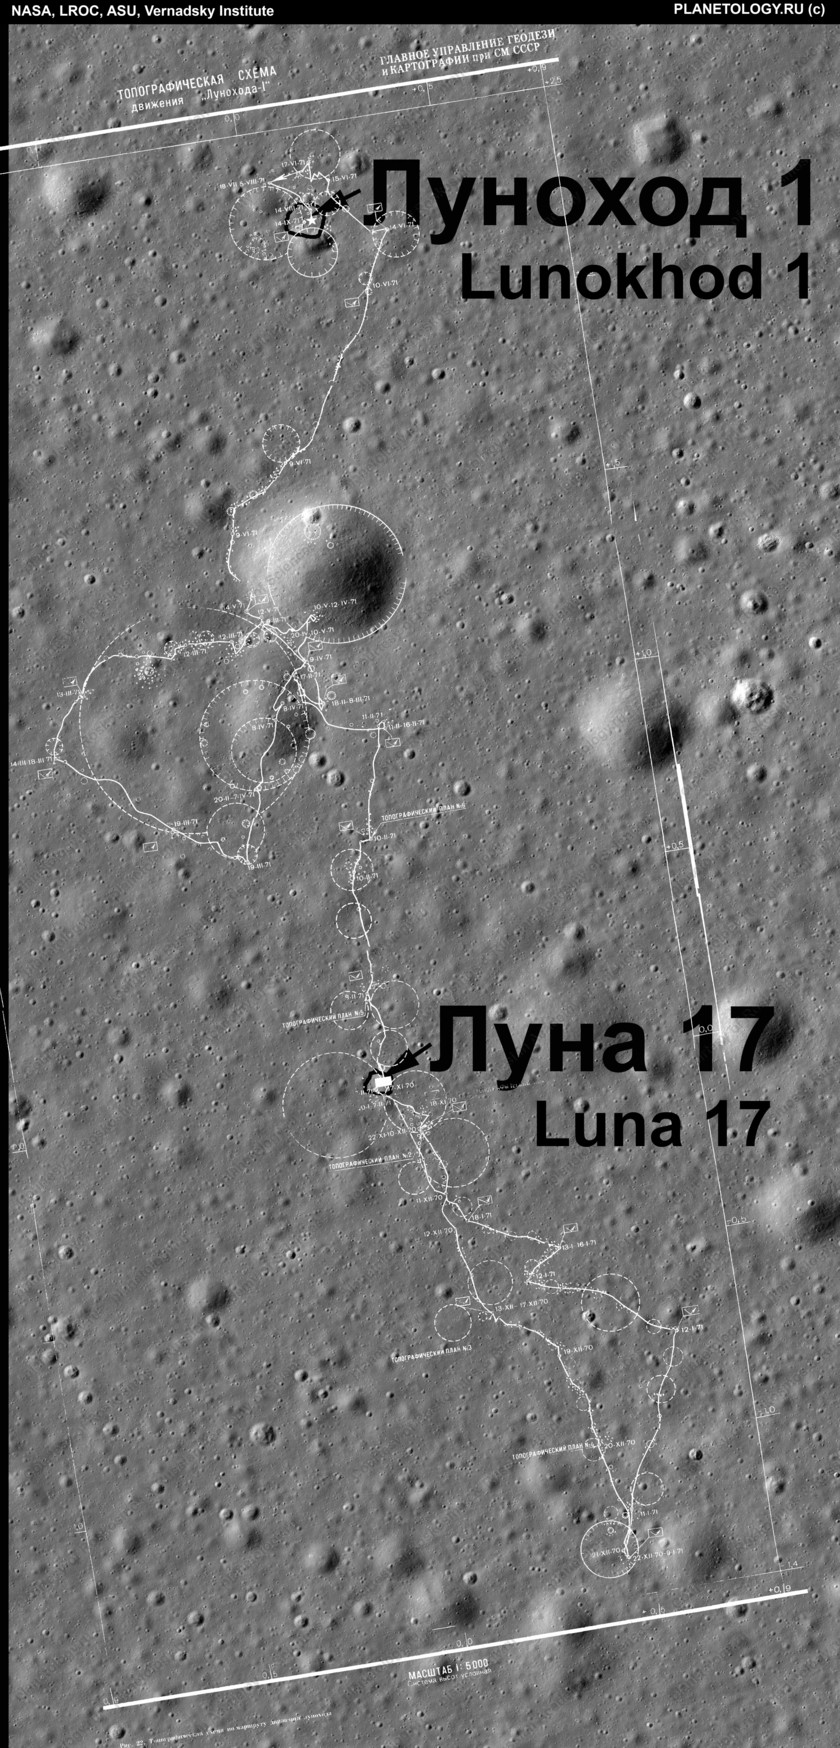 Lunokhod 1's path as seen from LROC